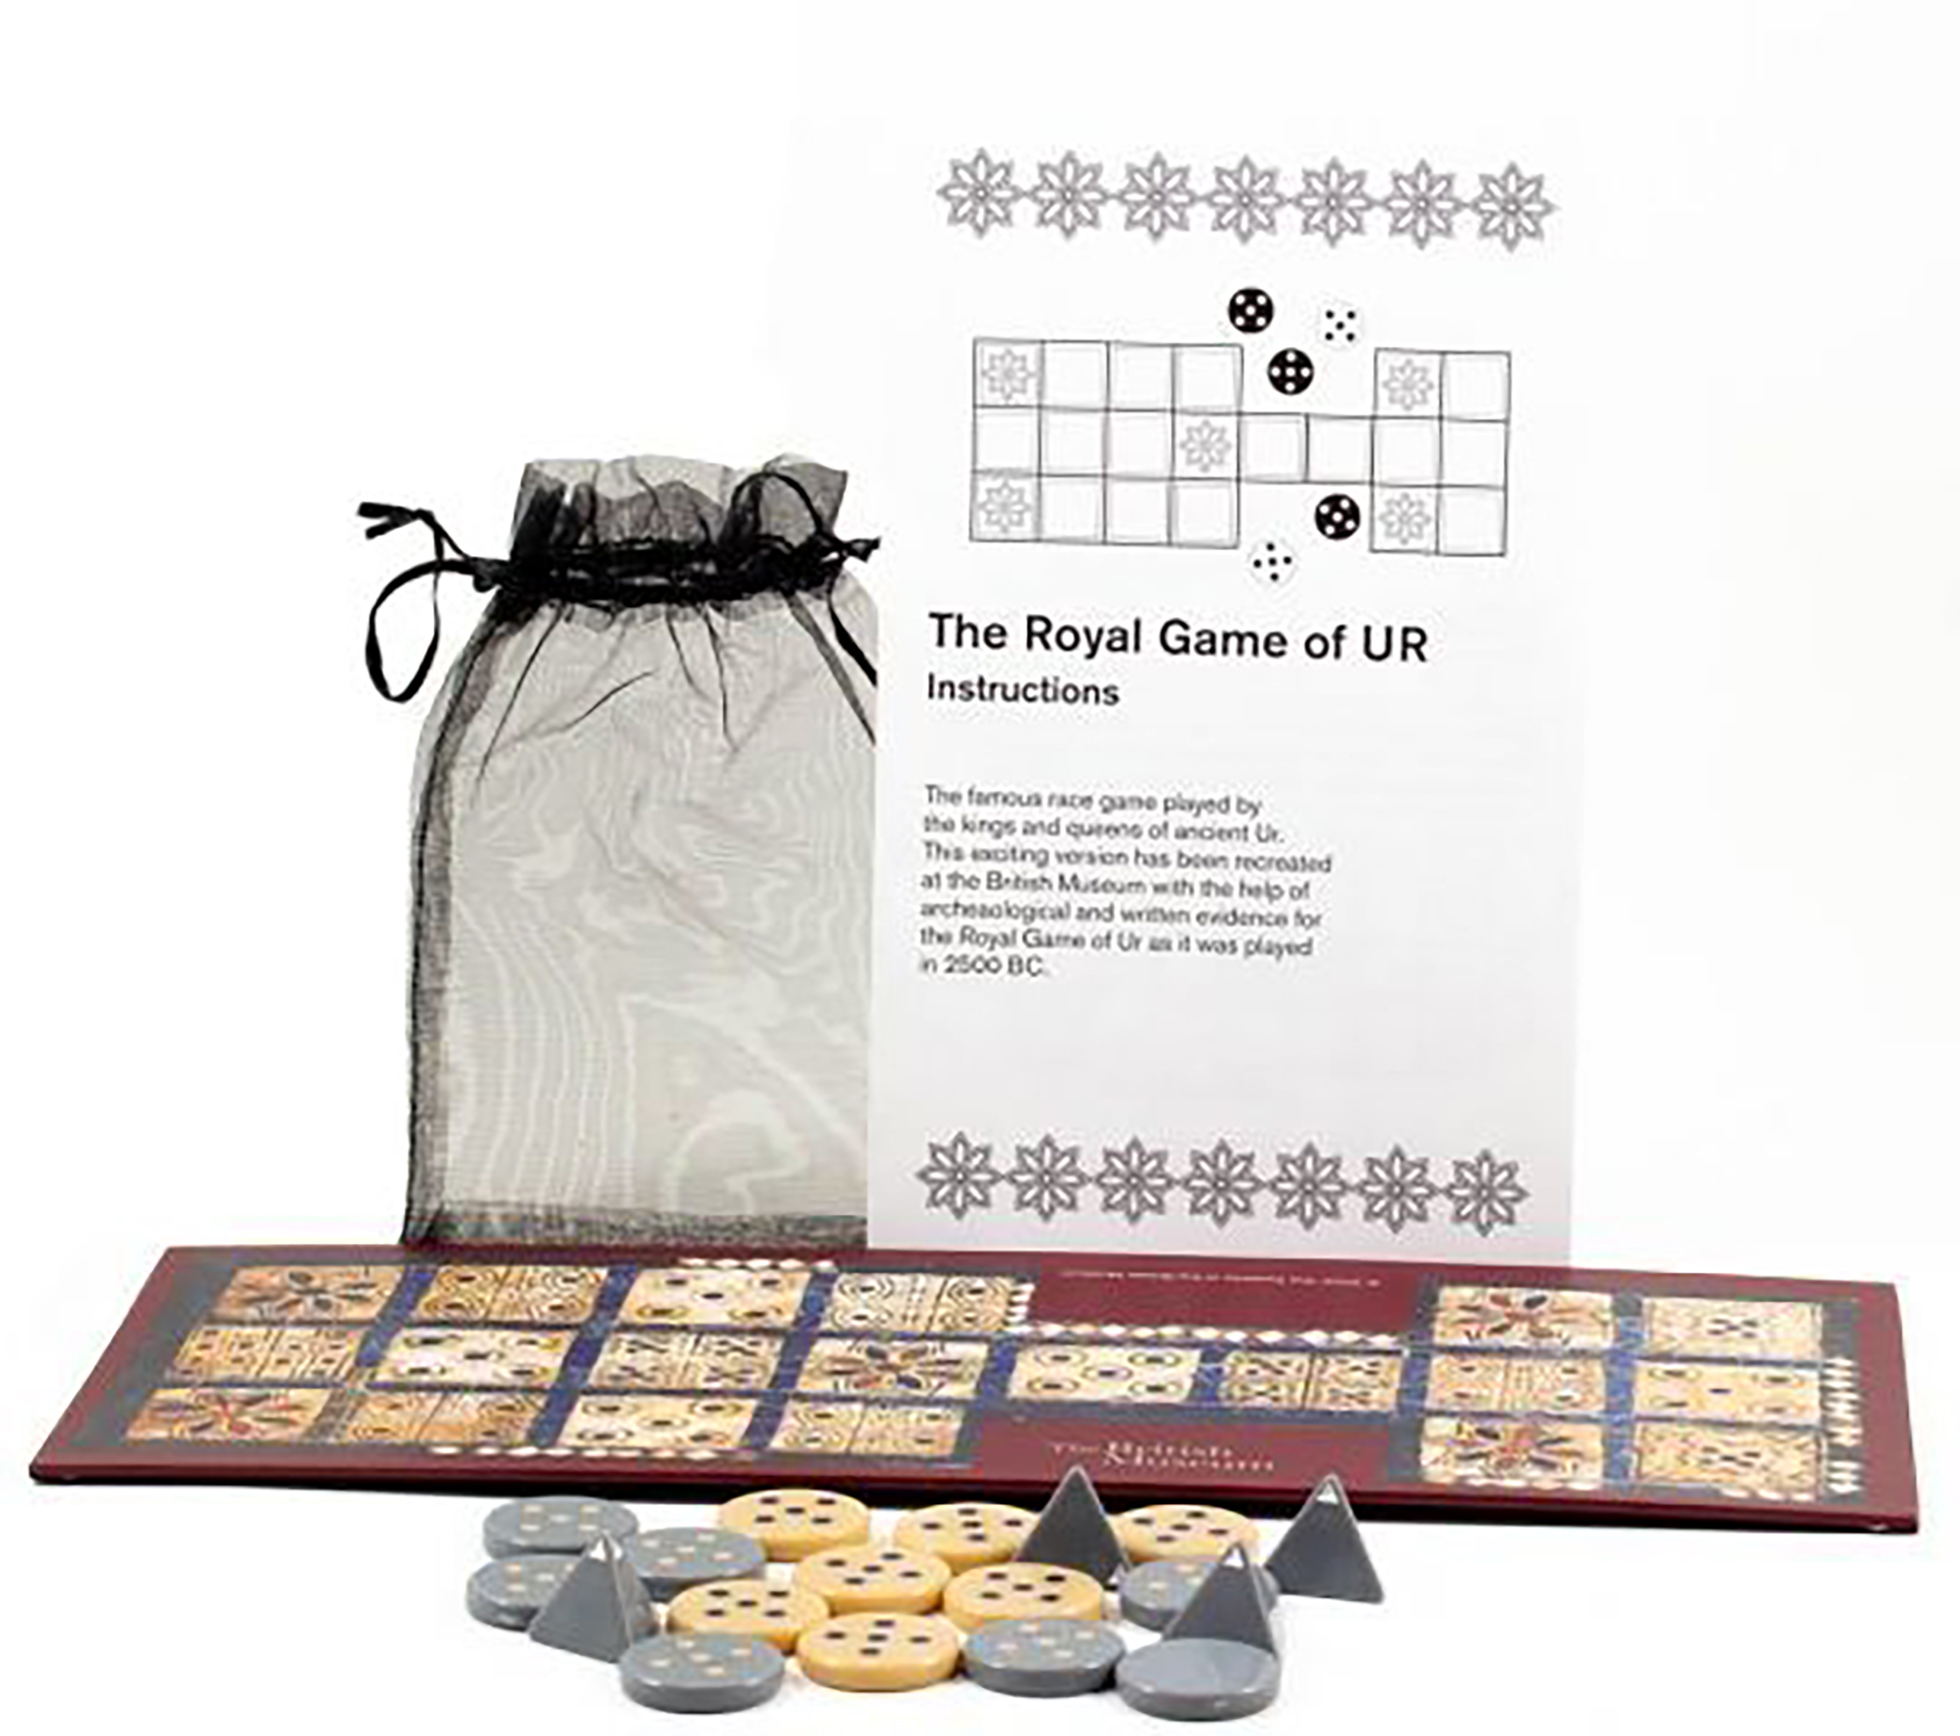 The Royal Game of Ur from the British Museum shop, shown with instruction leaflet.